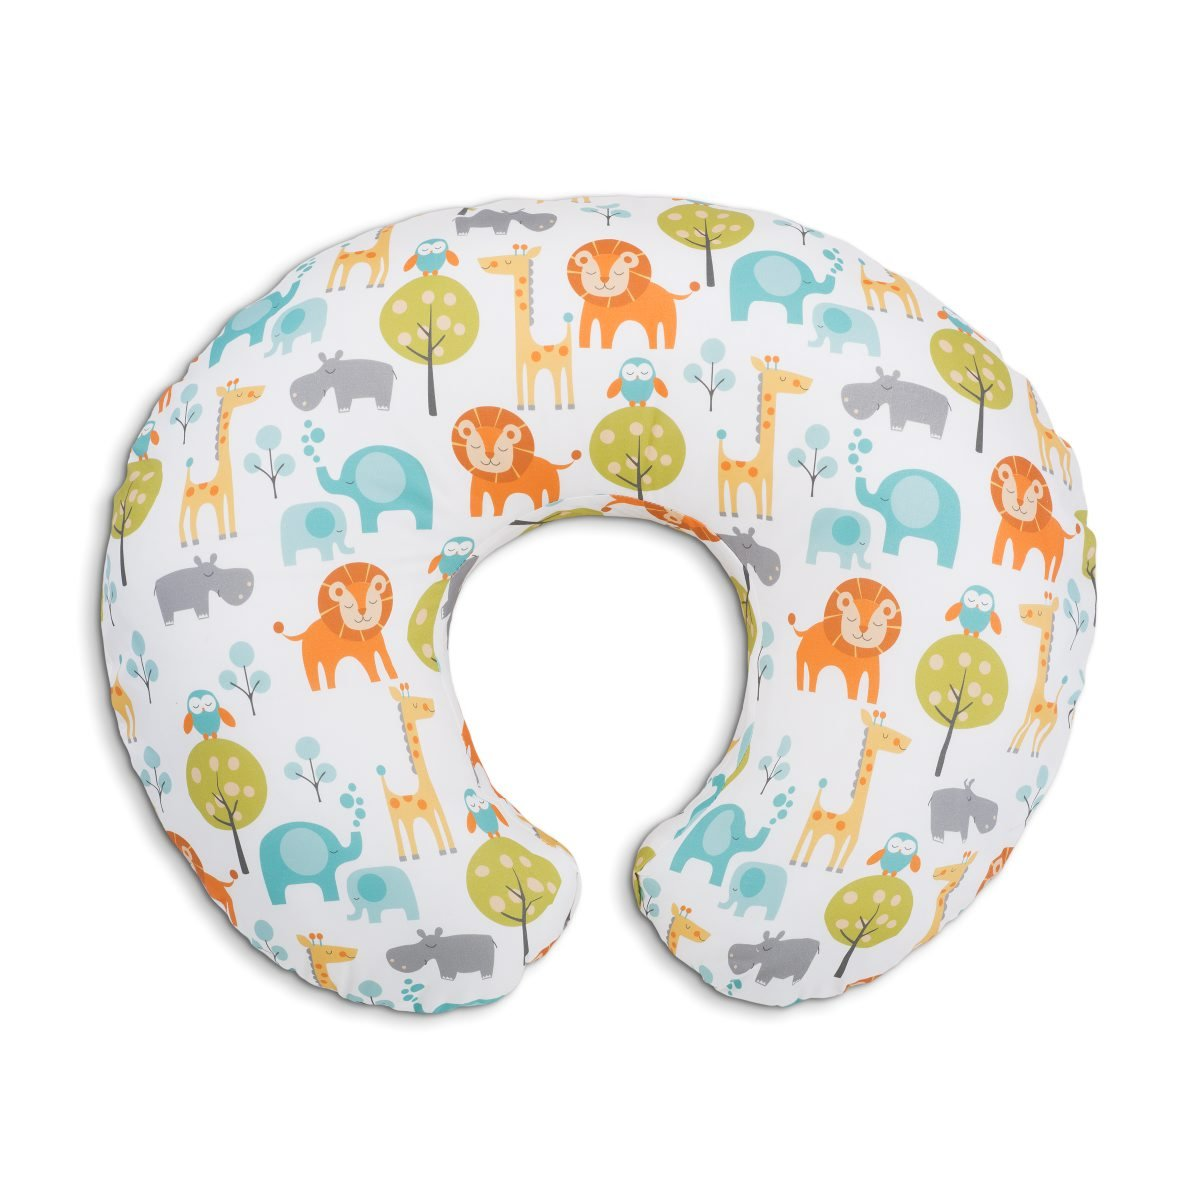 Boppy- Cojí n de lactancia algodó n, ergonó mico, indeformable y optima adaptabilidad, de 0 a 12 meses, estampado Jungle ergonómico Chicco 8079902430000